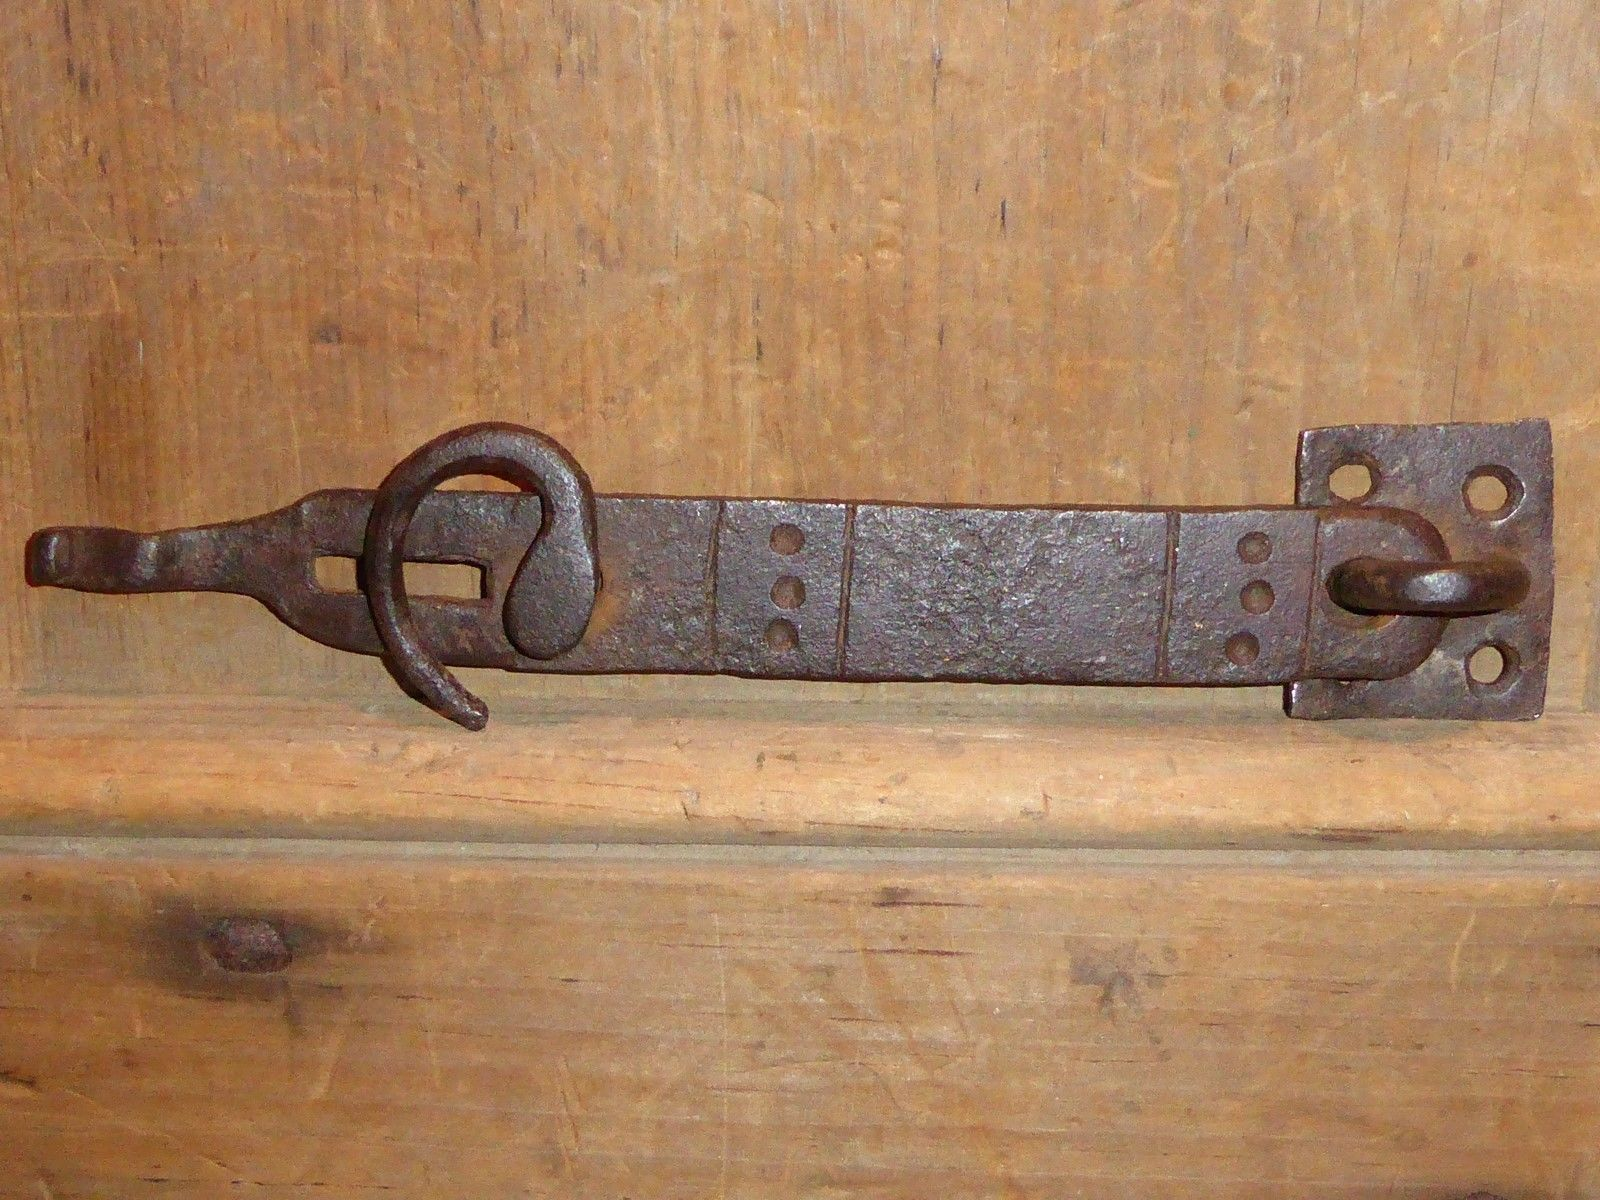 18TH C WROUGHT IRON FOLK ART DECORATED DOOR HASP LATCH L 8 1/4 & 18TH C WROUGHT IRON FOLK ART DECORATED DOOR HASP LATCH L :8 1/4 ...